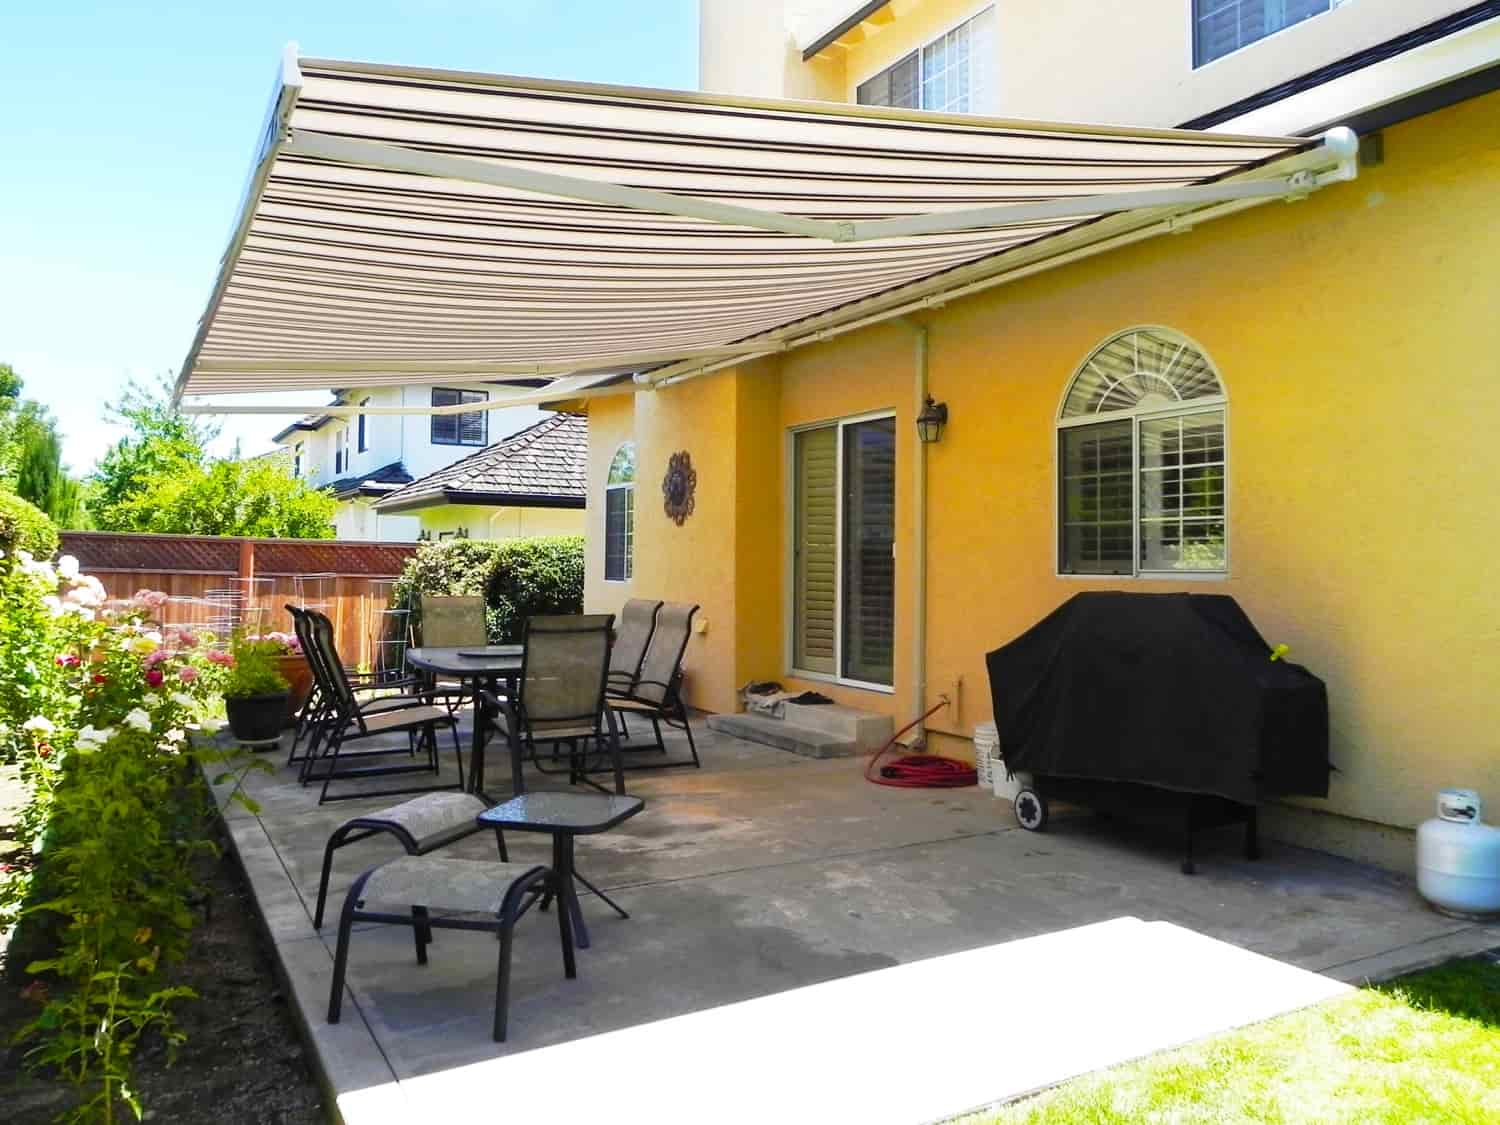 Open Retractable Awning For Nice Weather